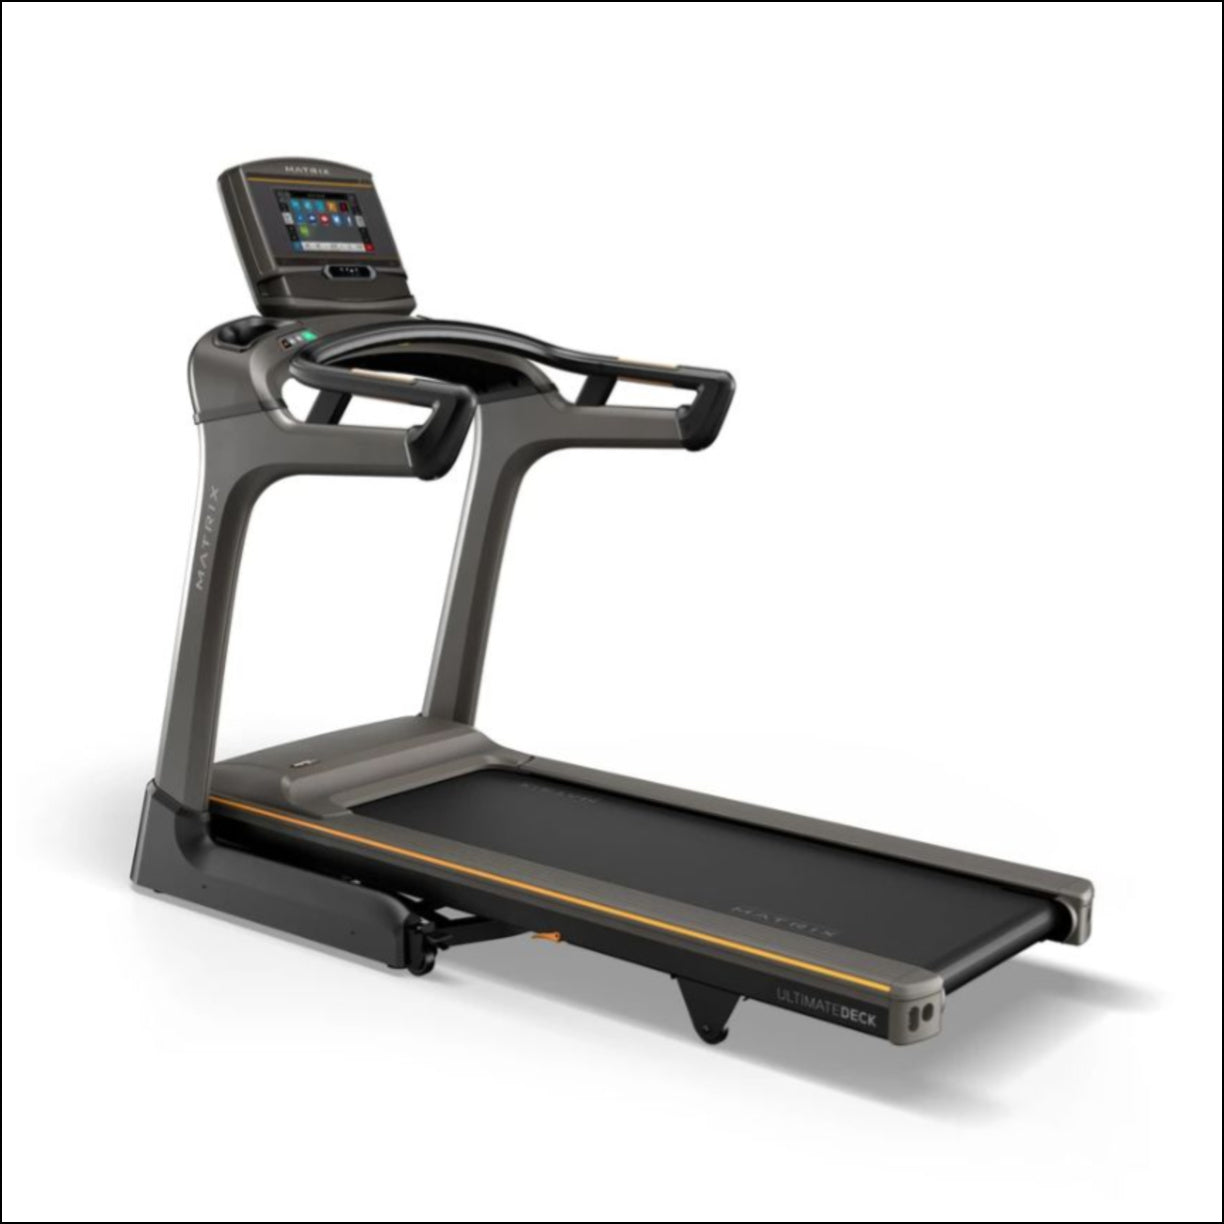 MATRIX TF30 XER Treadmill Experience a natural, powerful run with the industry's most advanced frame and deck combination. Our TF30 Treadmill includes a folding design, plus our exclusive Johnson Drive System and Ultimate Deck System.